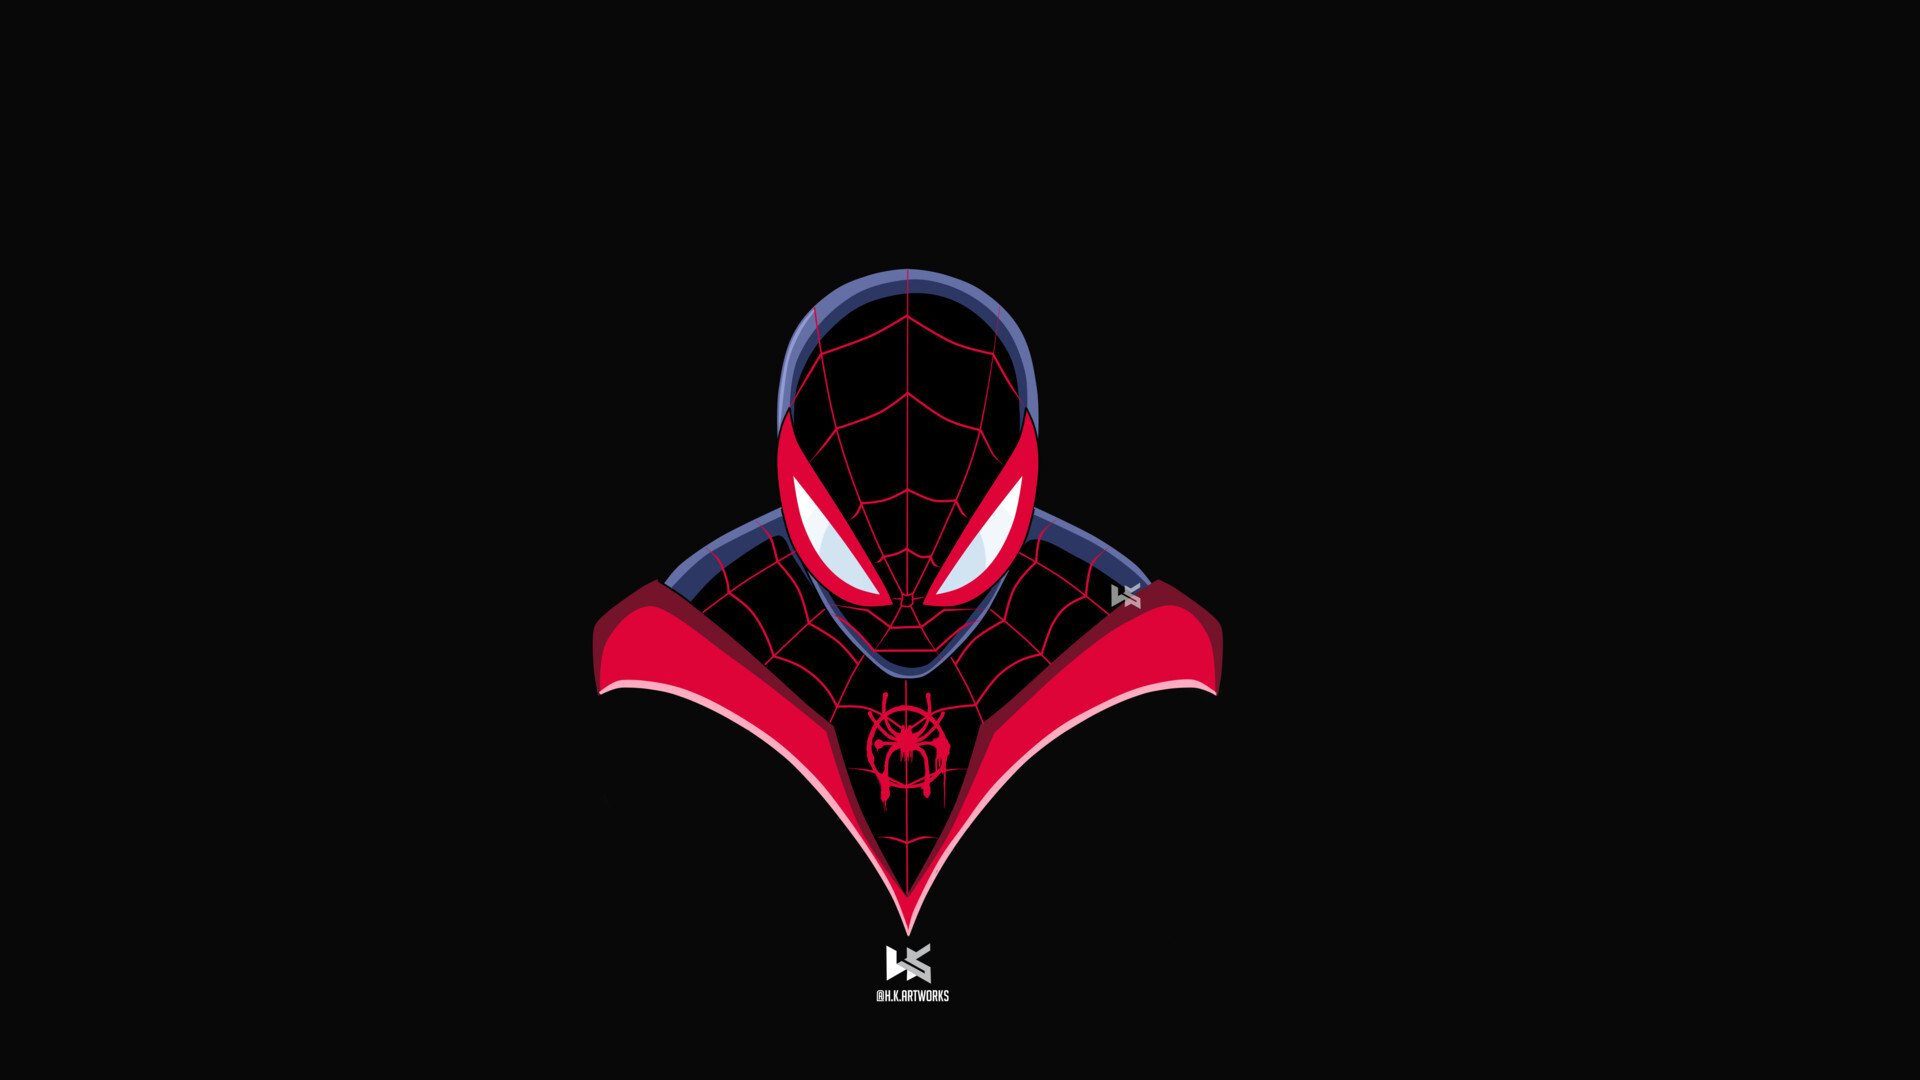 1920x1080 Spiderman Miles Morales Art Laptop Full Hd 1080p Hd 4k